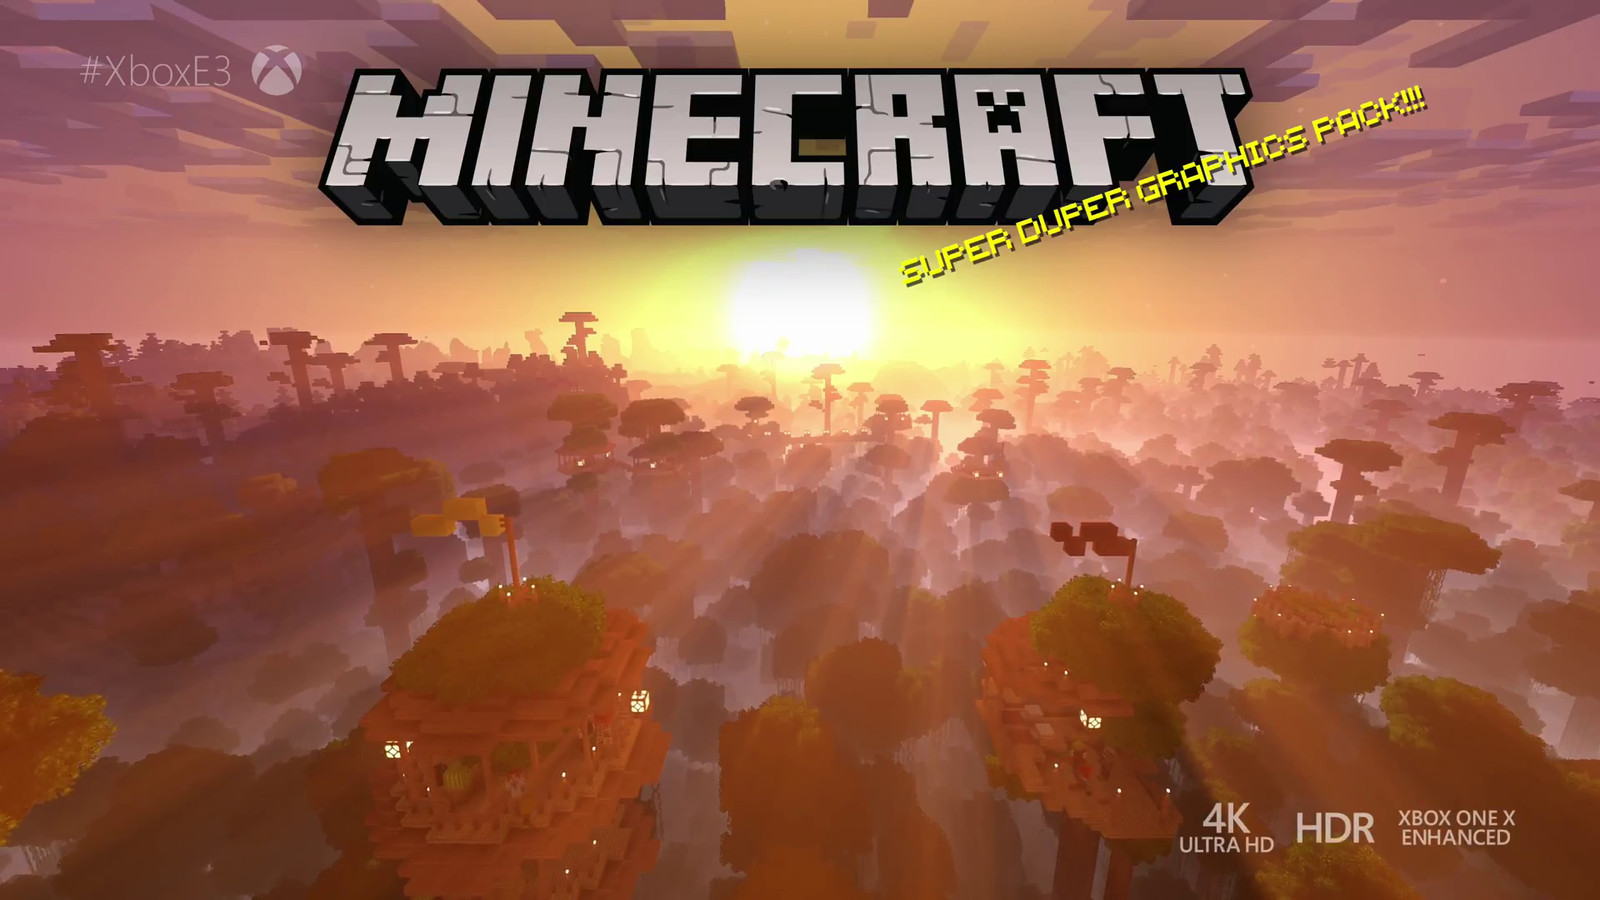 Microsoft Fall Wallpaper Minecraft Is Going Totally Cross Platform Polygon